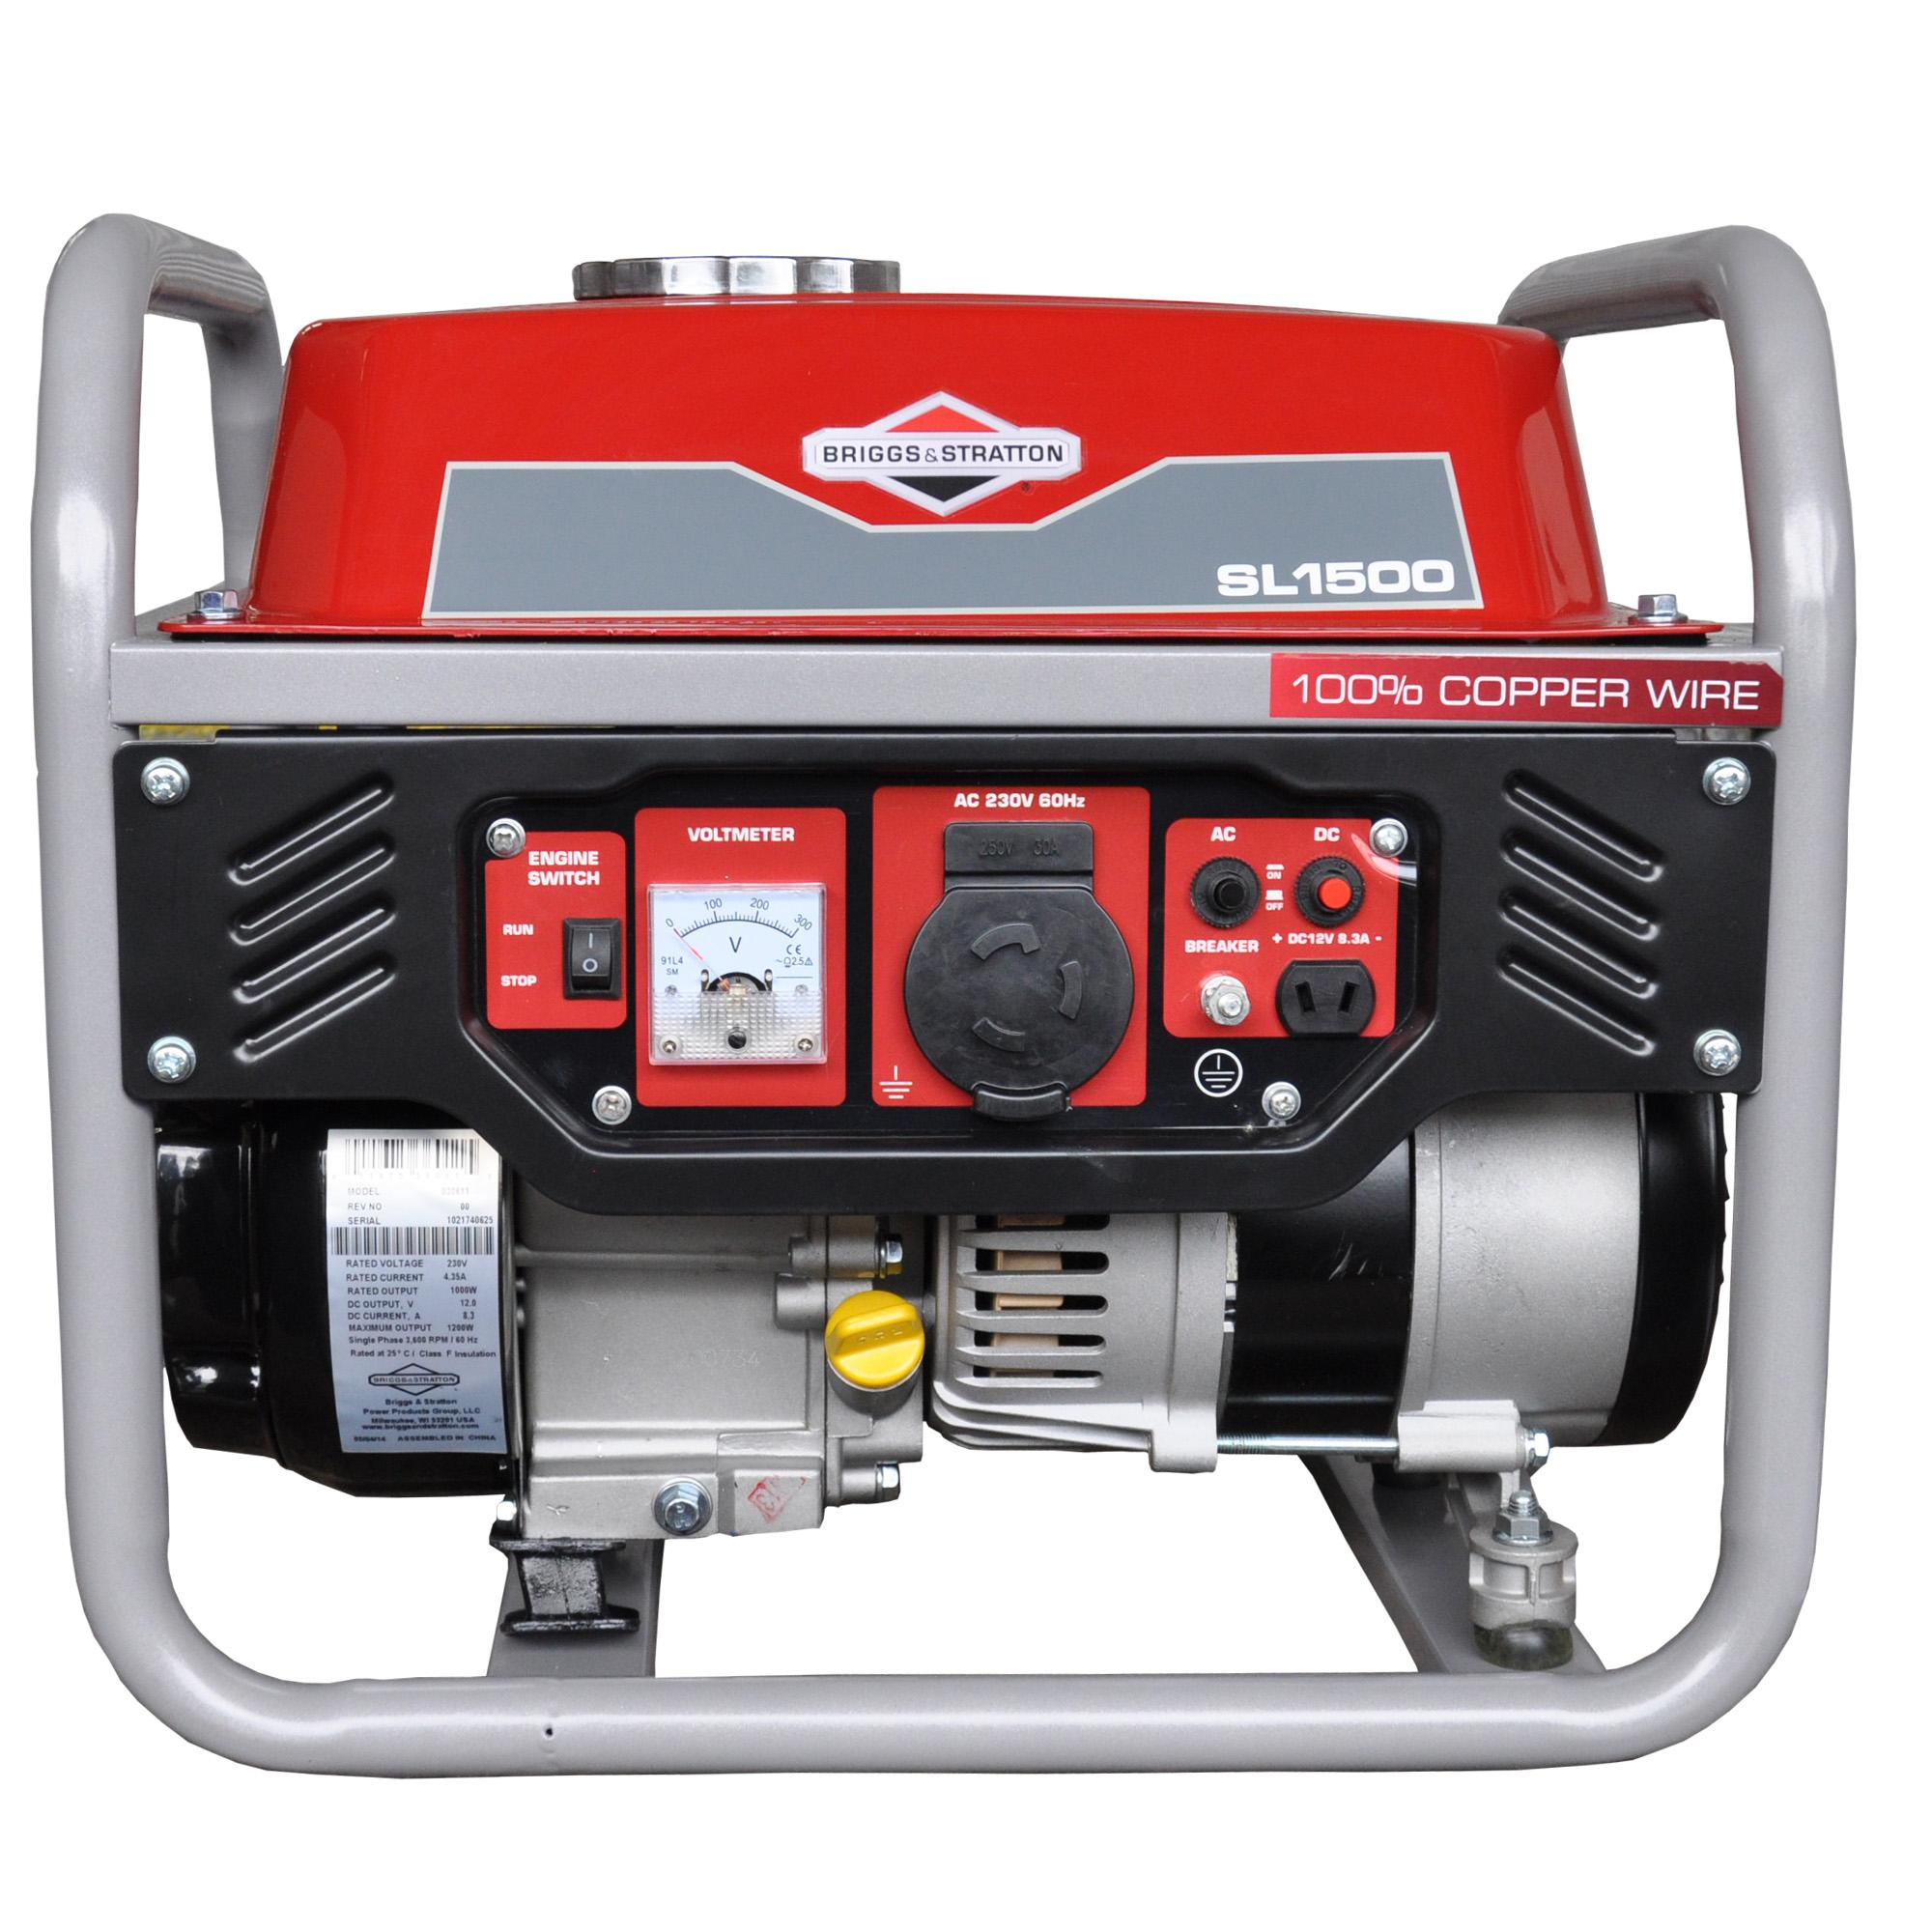 Portable Generator For Sale Power Prices Brands Wiring To House Hook Up On A Briggs Stratton Sl 1500